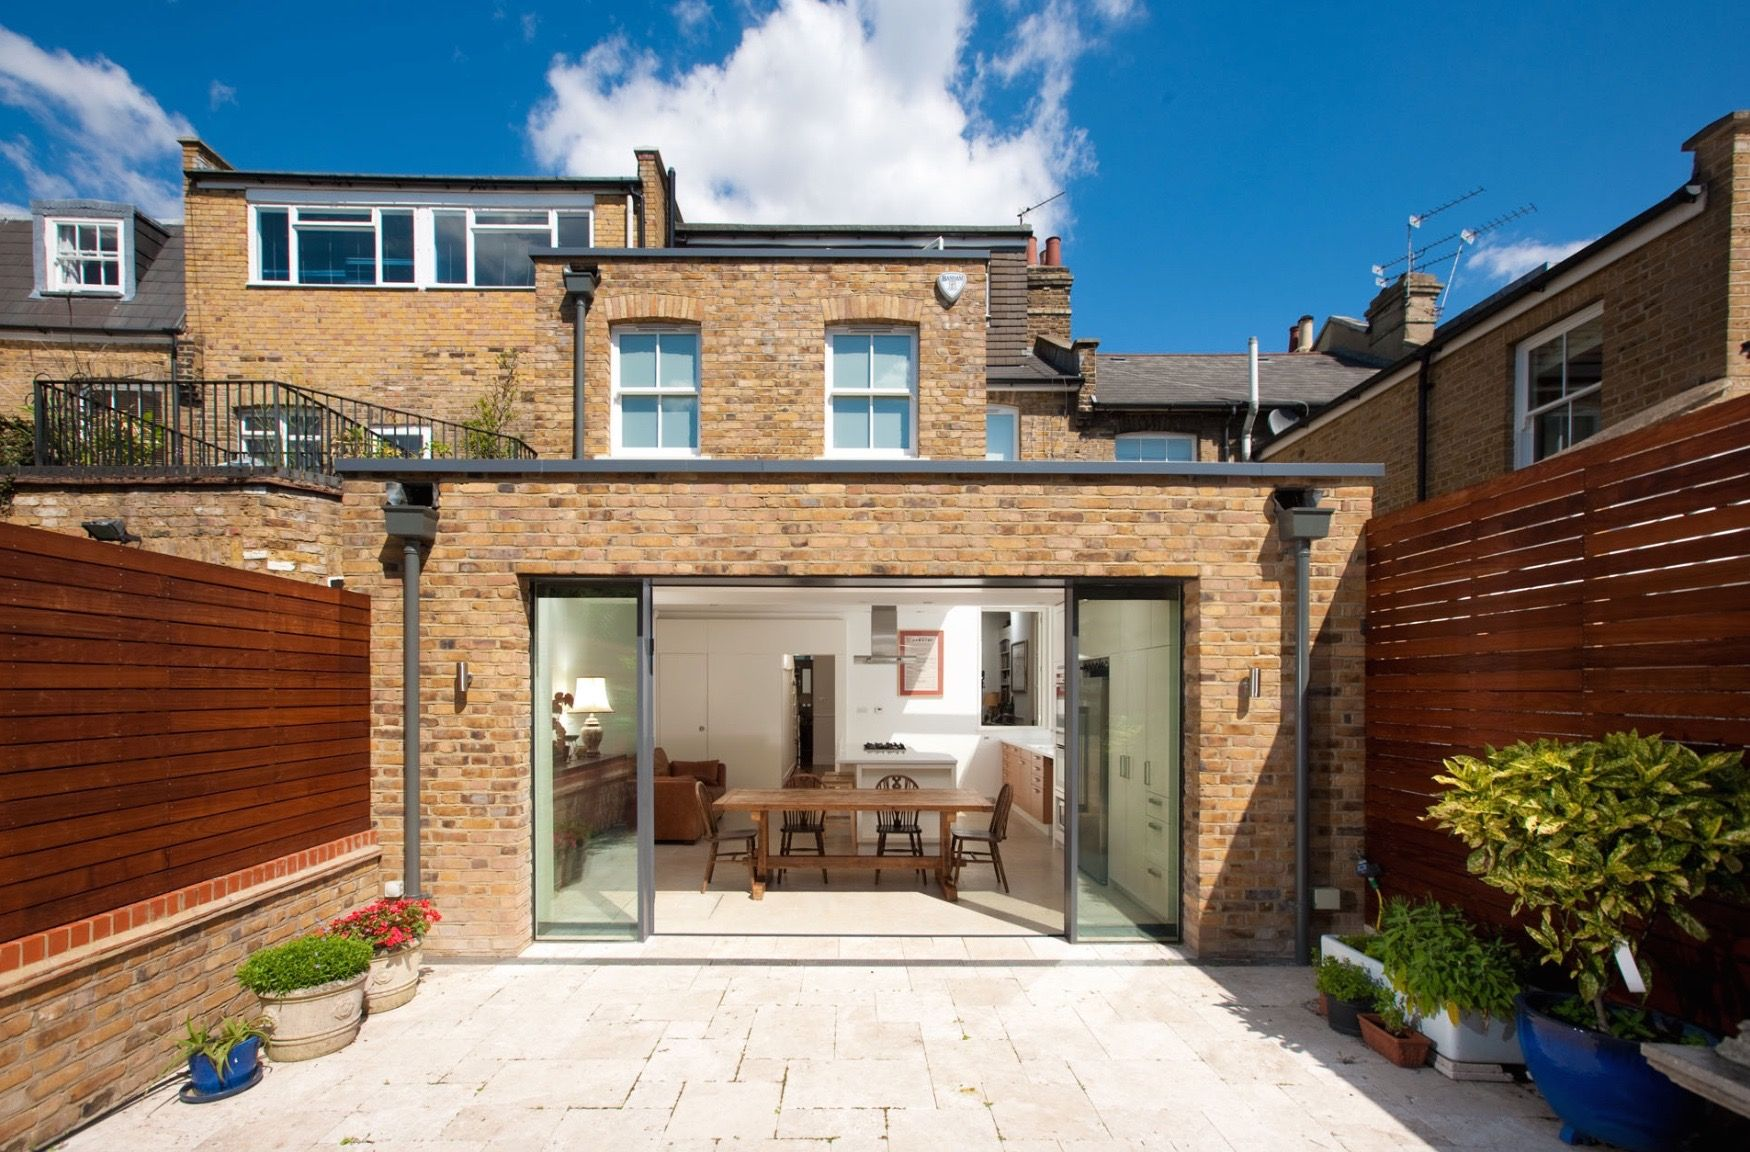 Brick Flat Roof Extension With Parapet House Extensions House Extension Design Flat Roof Extension